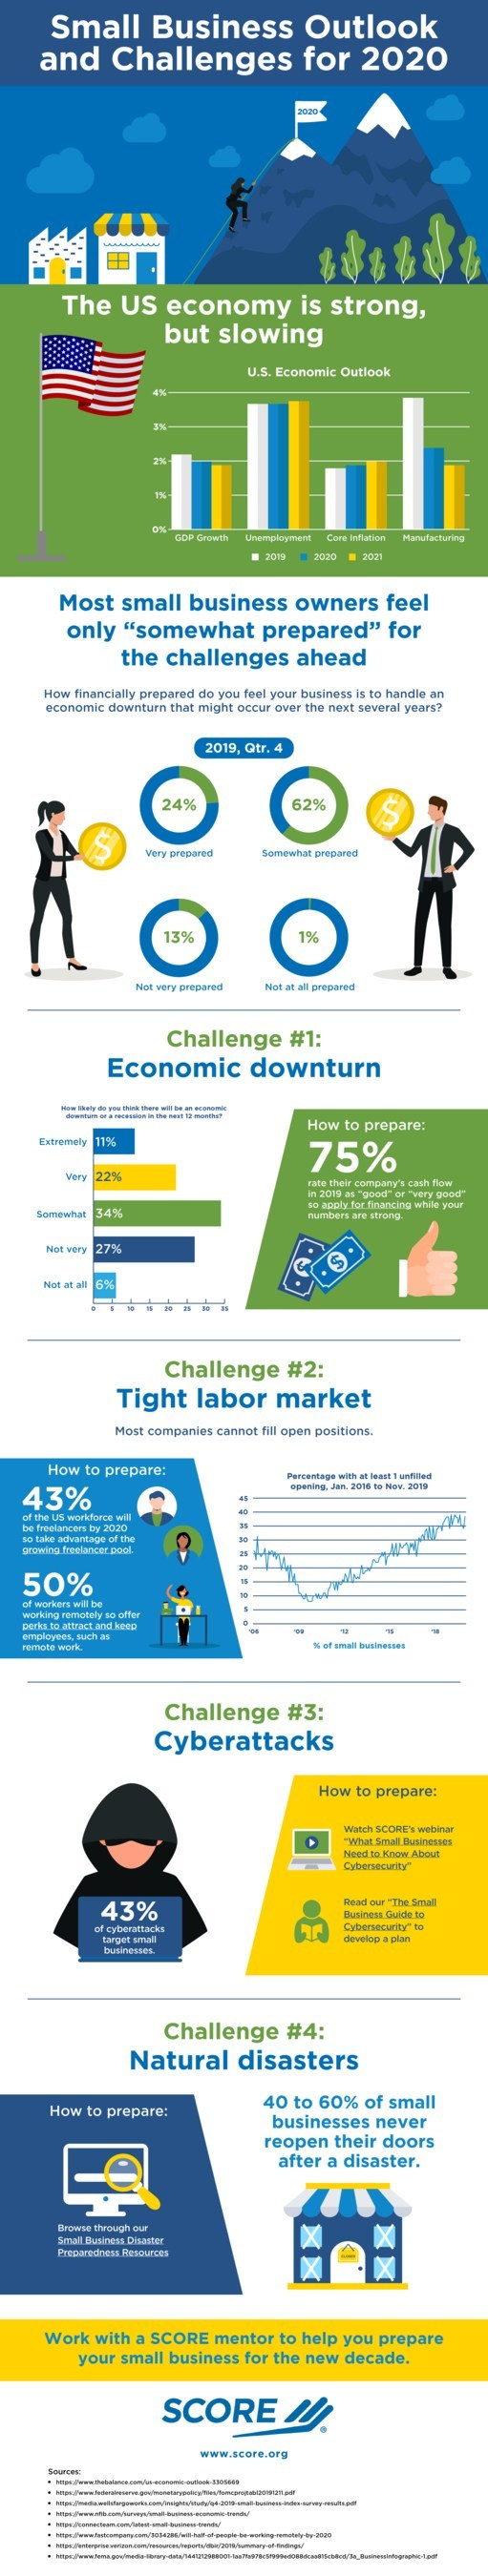 "Small business owners feel only ""somewhat prepared"" for a potential economic downturn, according to new data gathered by SCORE, mentors to America's small businesses. Data shows that the U.S. economy is strong, but slowing; and, while 75% of small business owners rated their company's cash flow as ""good"" or ""very good"" in 2019, 67% of small business owners anticipate an economic downturn or recession in the next 12 months."